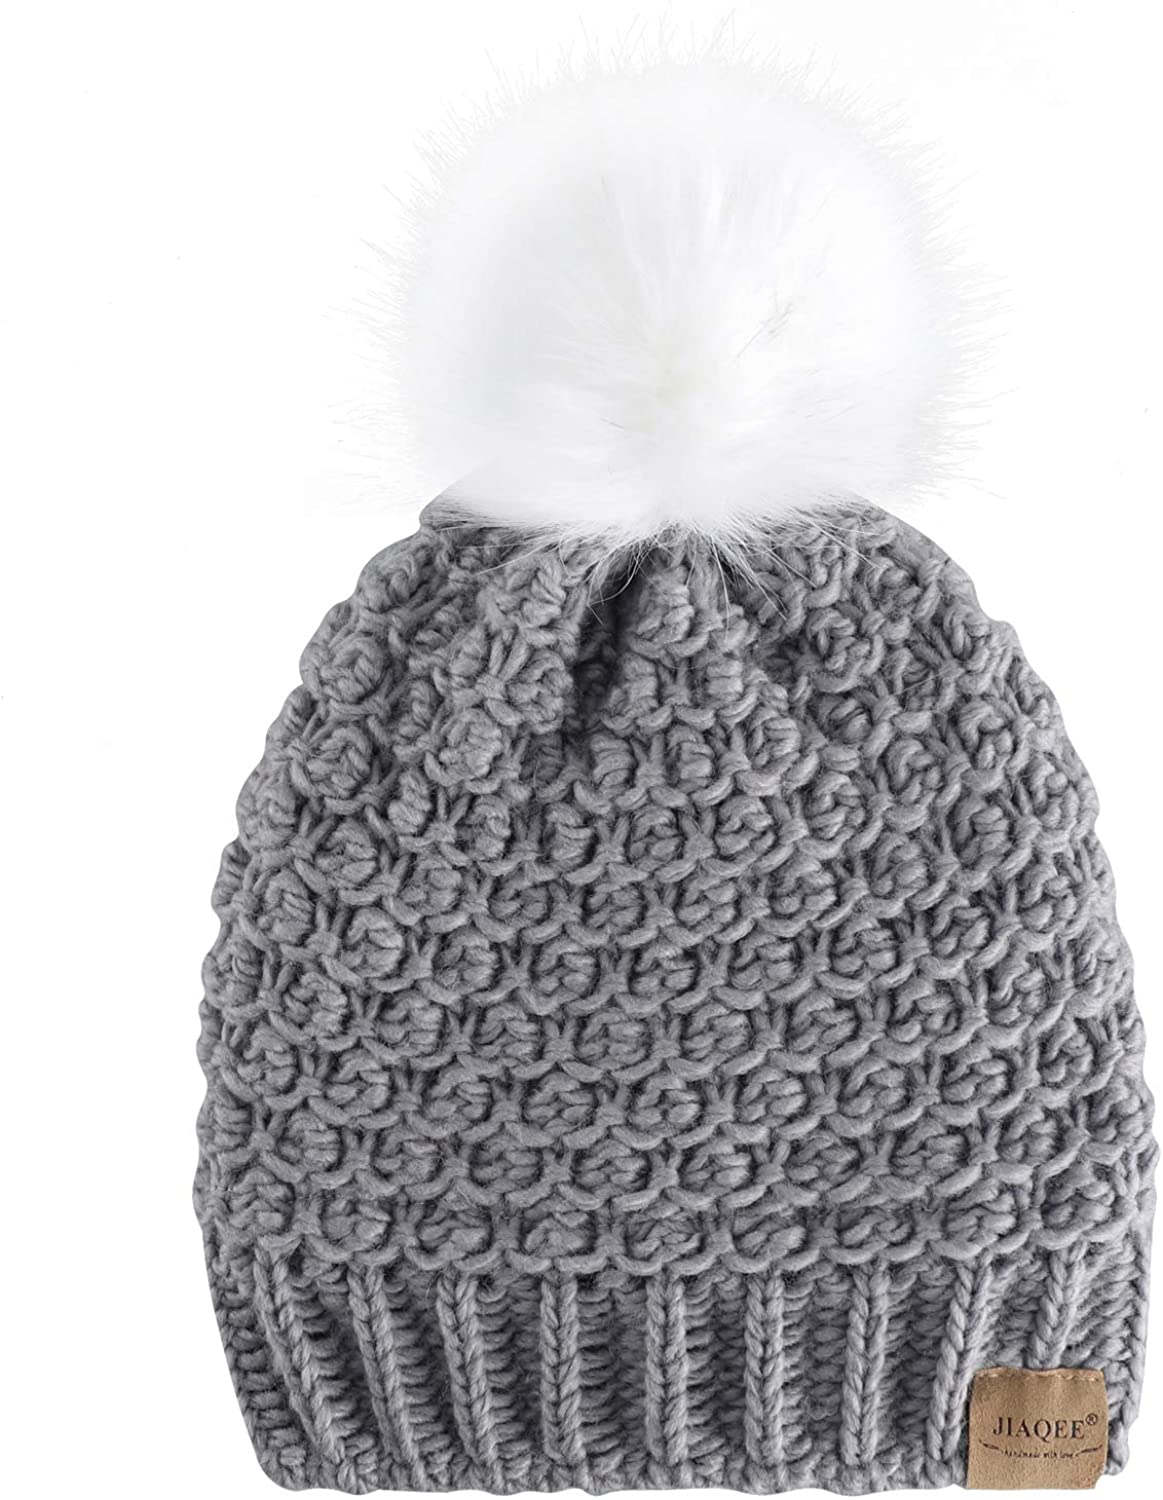 Jiaqee Womens Knitted Beanie Hats Winter Warm Crochet hat with Faux Fur Pompom Cotton Lined Caps for Women